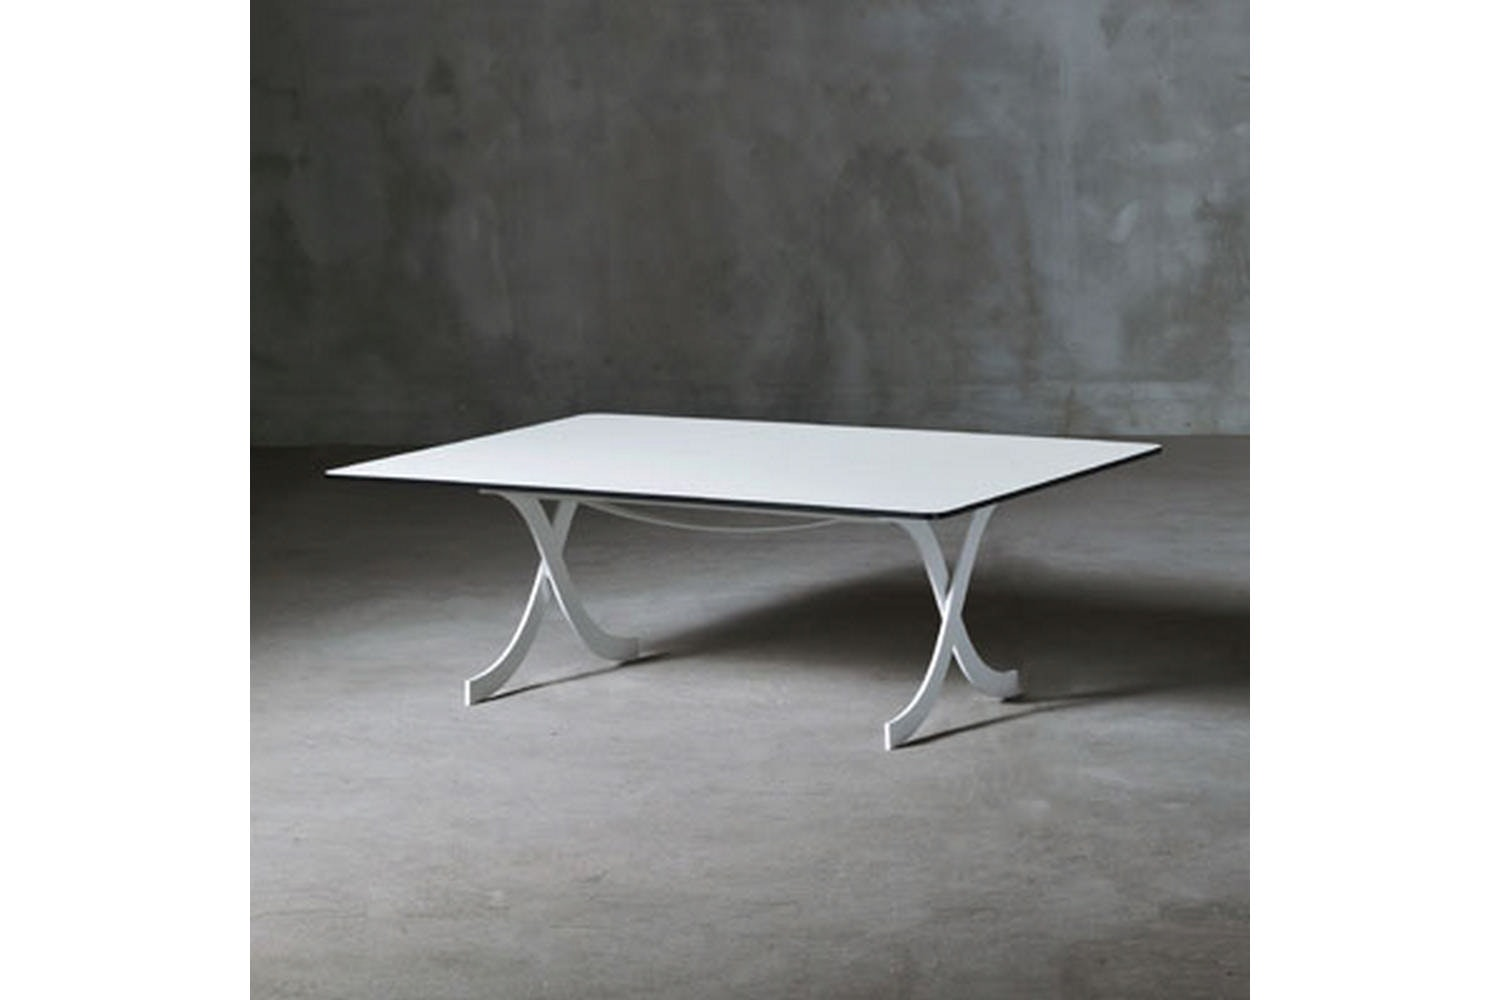 Barcelonina Front Table by Deepdesign for Serralunga